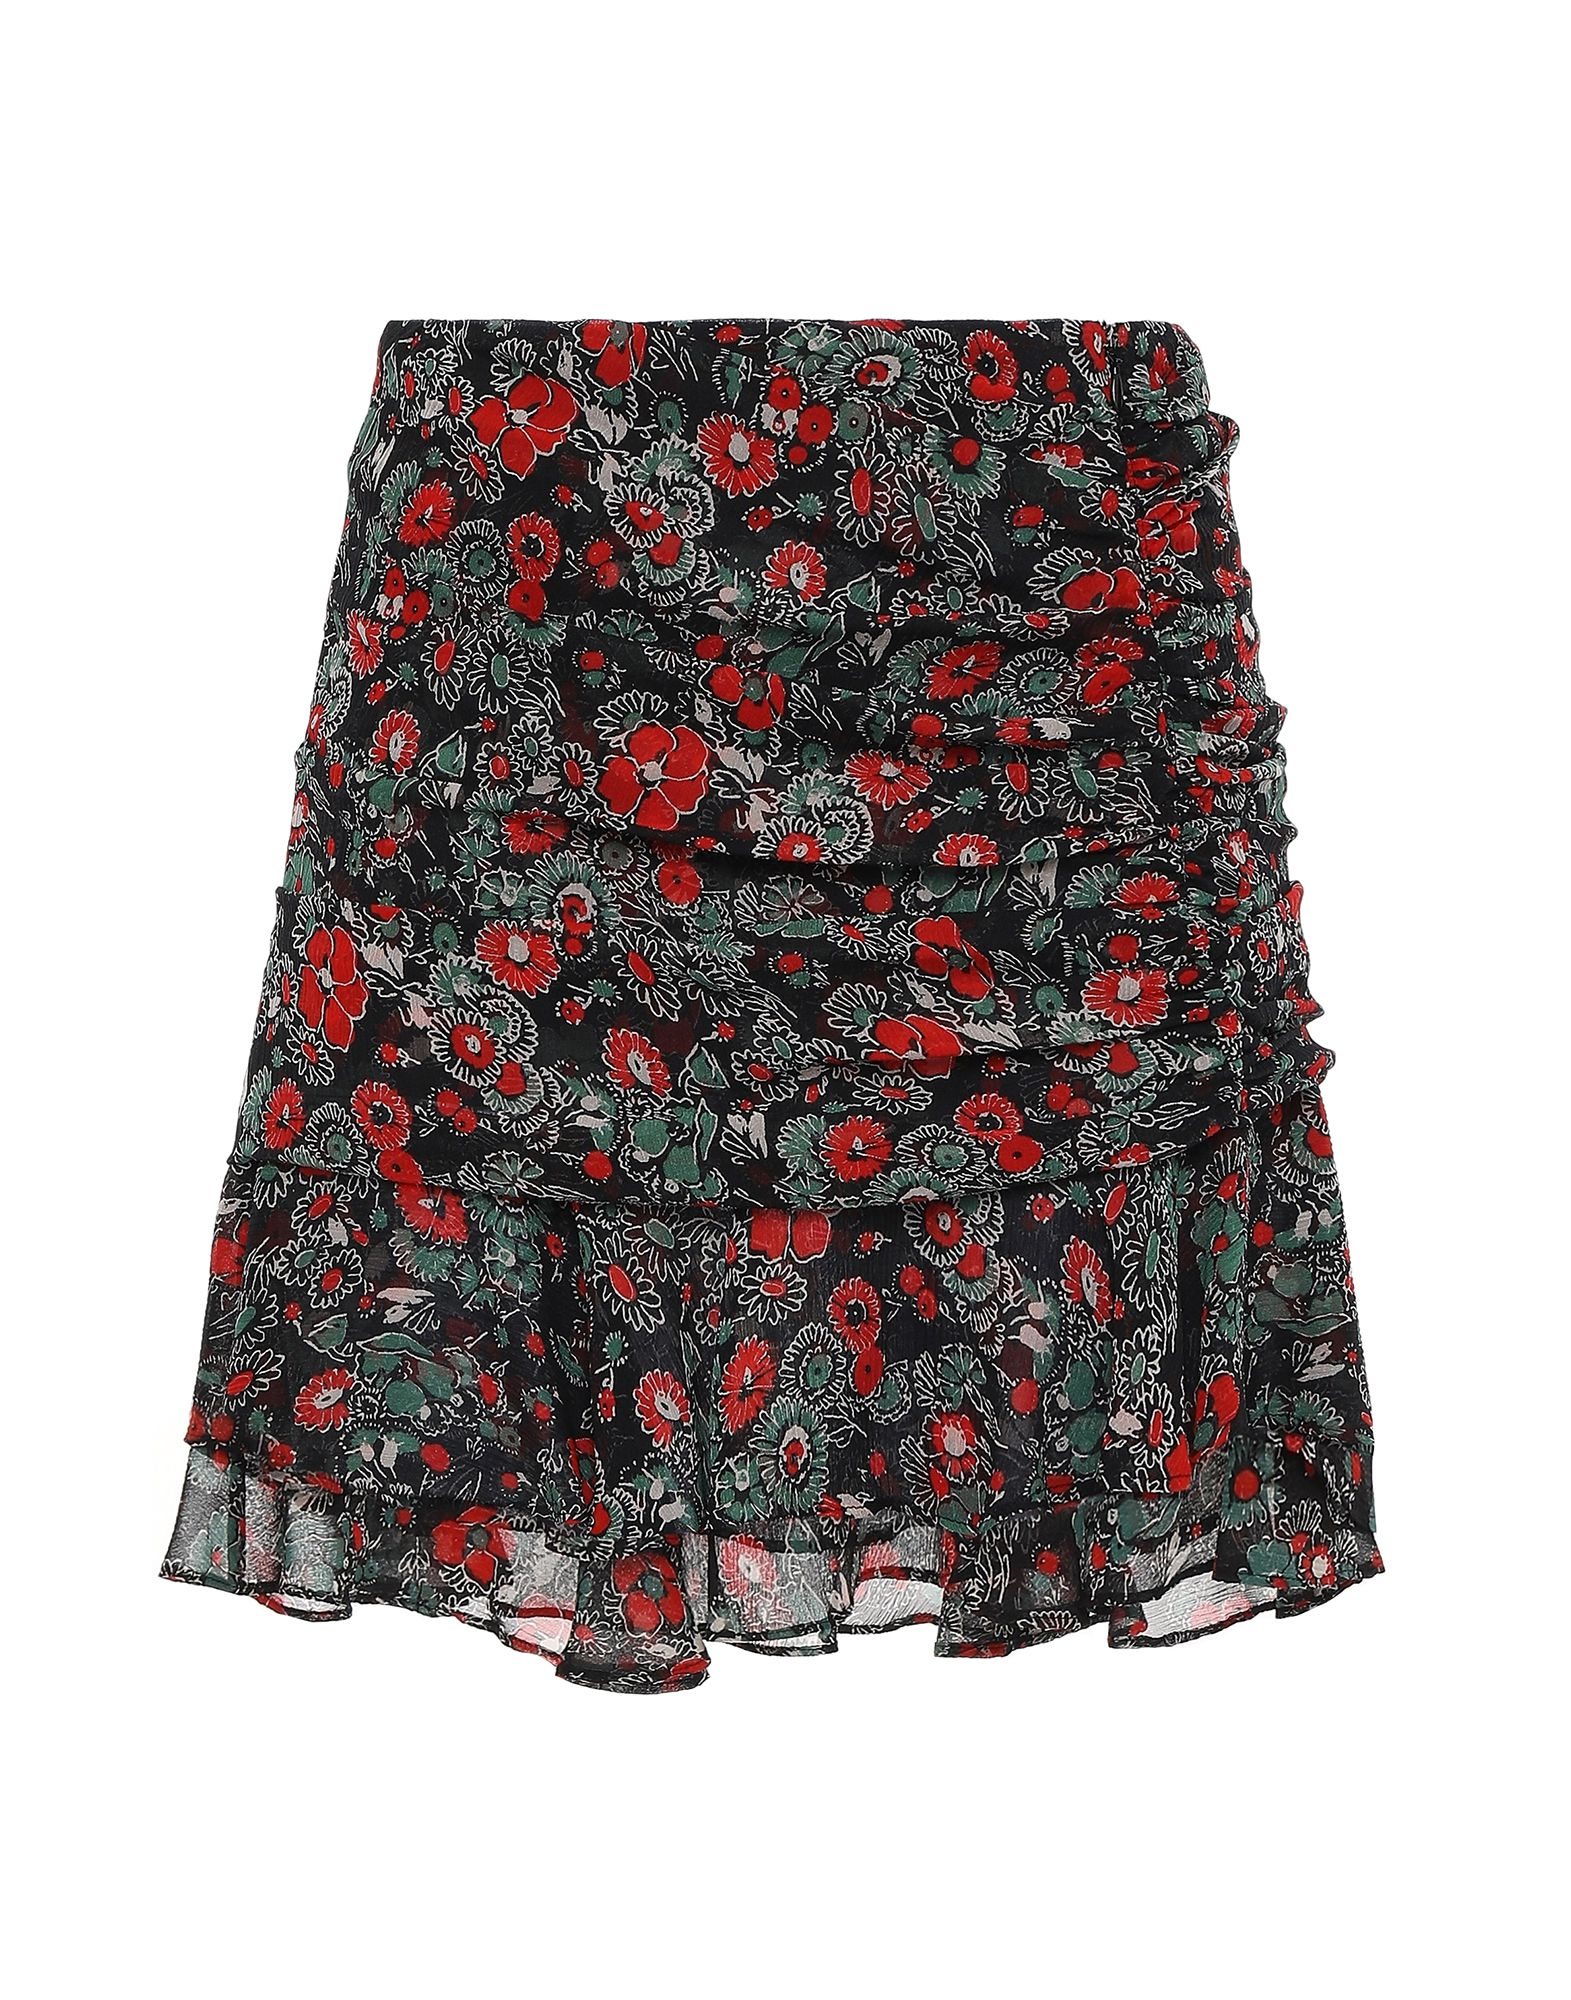 VERONICA BEARD Mini skirts. crepe, frills, floral design, no pockets, hook-and-bar, zip, unlined. 100% Silk